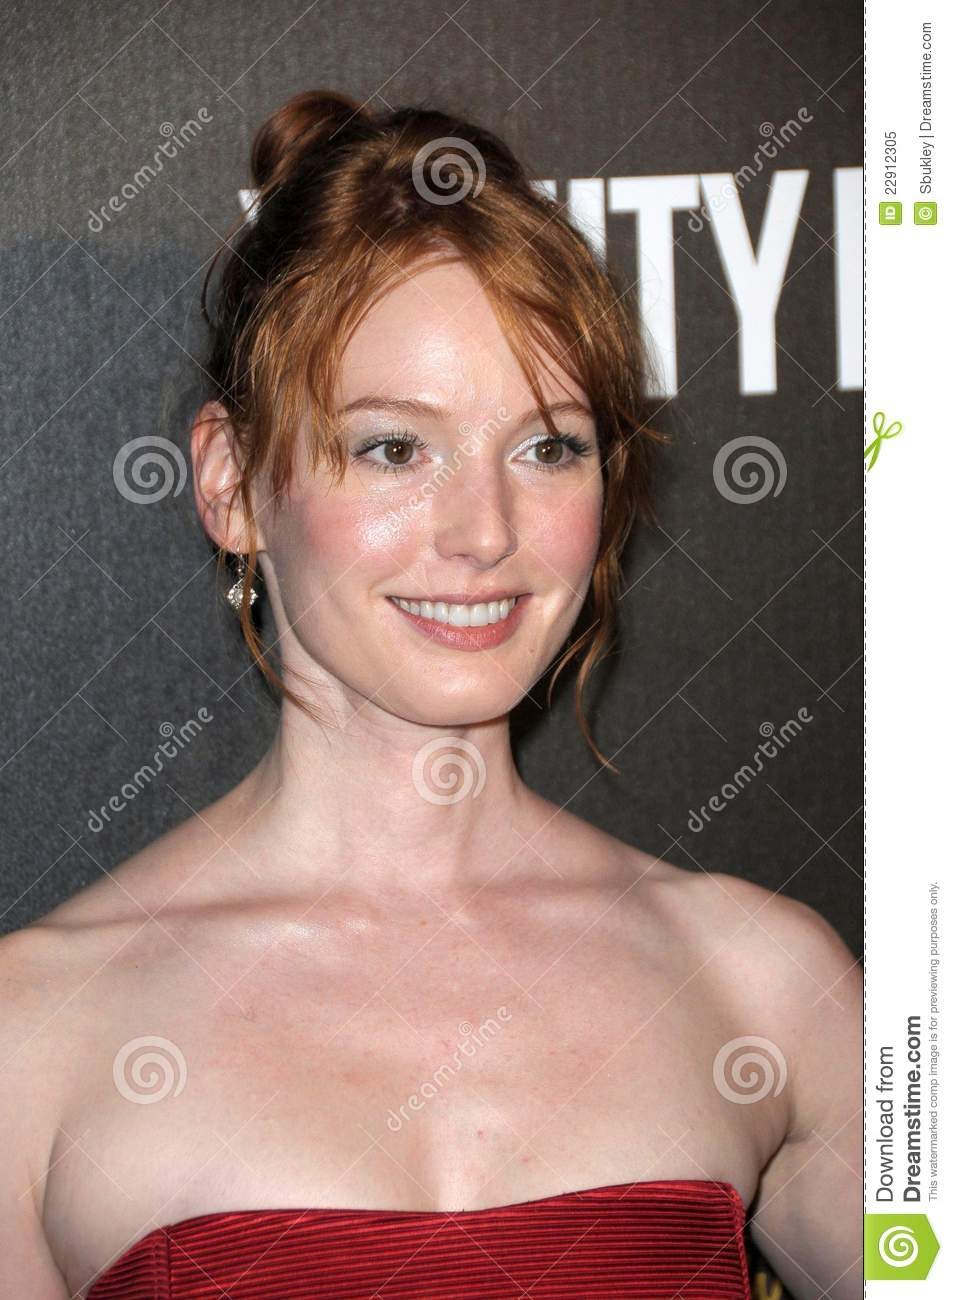 alicia witt 2016alicia witt walking dead, alicia witt foto, alicia witt photo, alicia witt supernatural, alicia witt wiki, alicia witt films, alicia witt wdw, alicia witt that's incredible, alicia witt album, alicia witt instagram, alicia witt 2016, alicia witt boyfriend husband, alicia witt music, alicia witt wikipedia, alicia witt fansite, alicia witt nibelungen